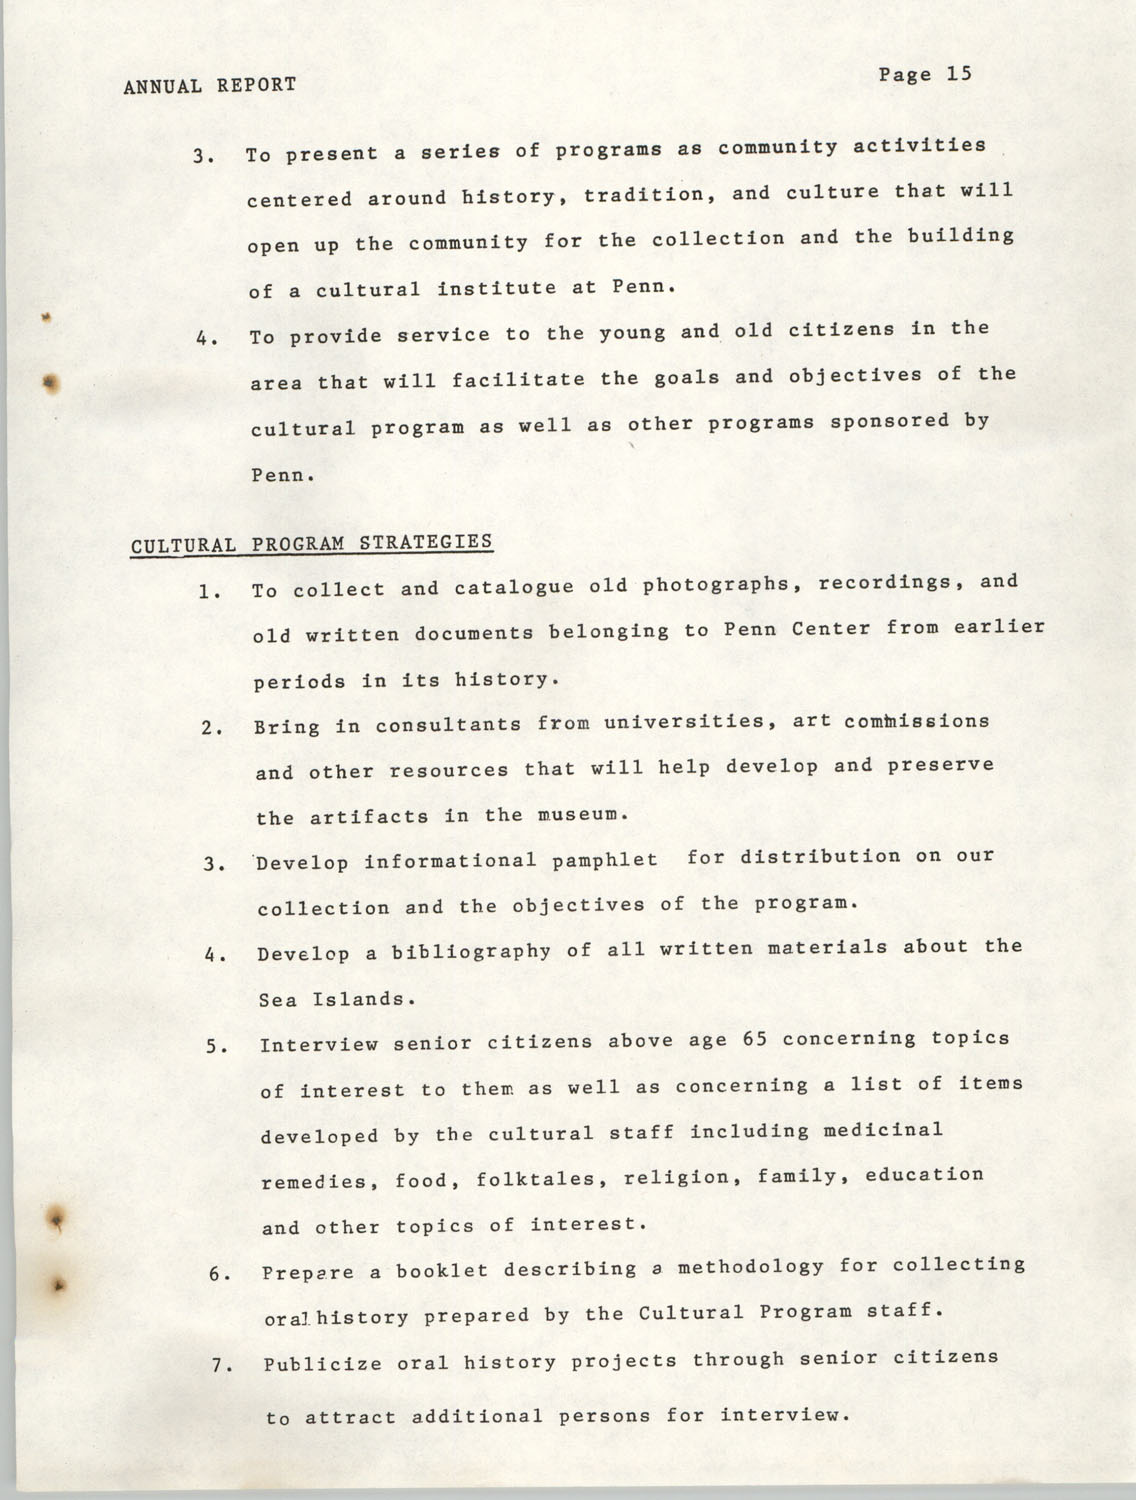 Annual Report, Penn Community Services, 1974, Page 15